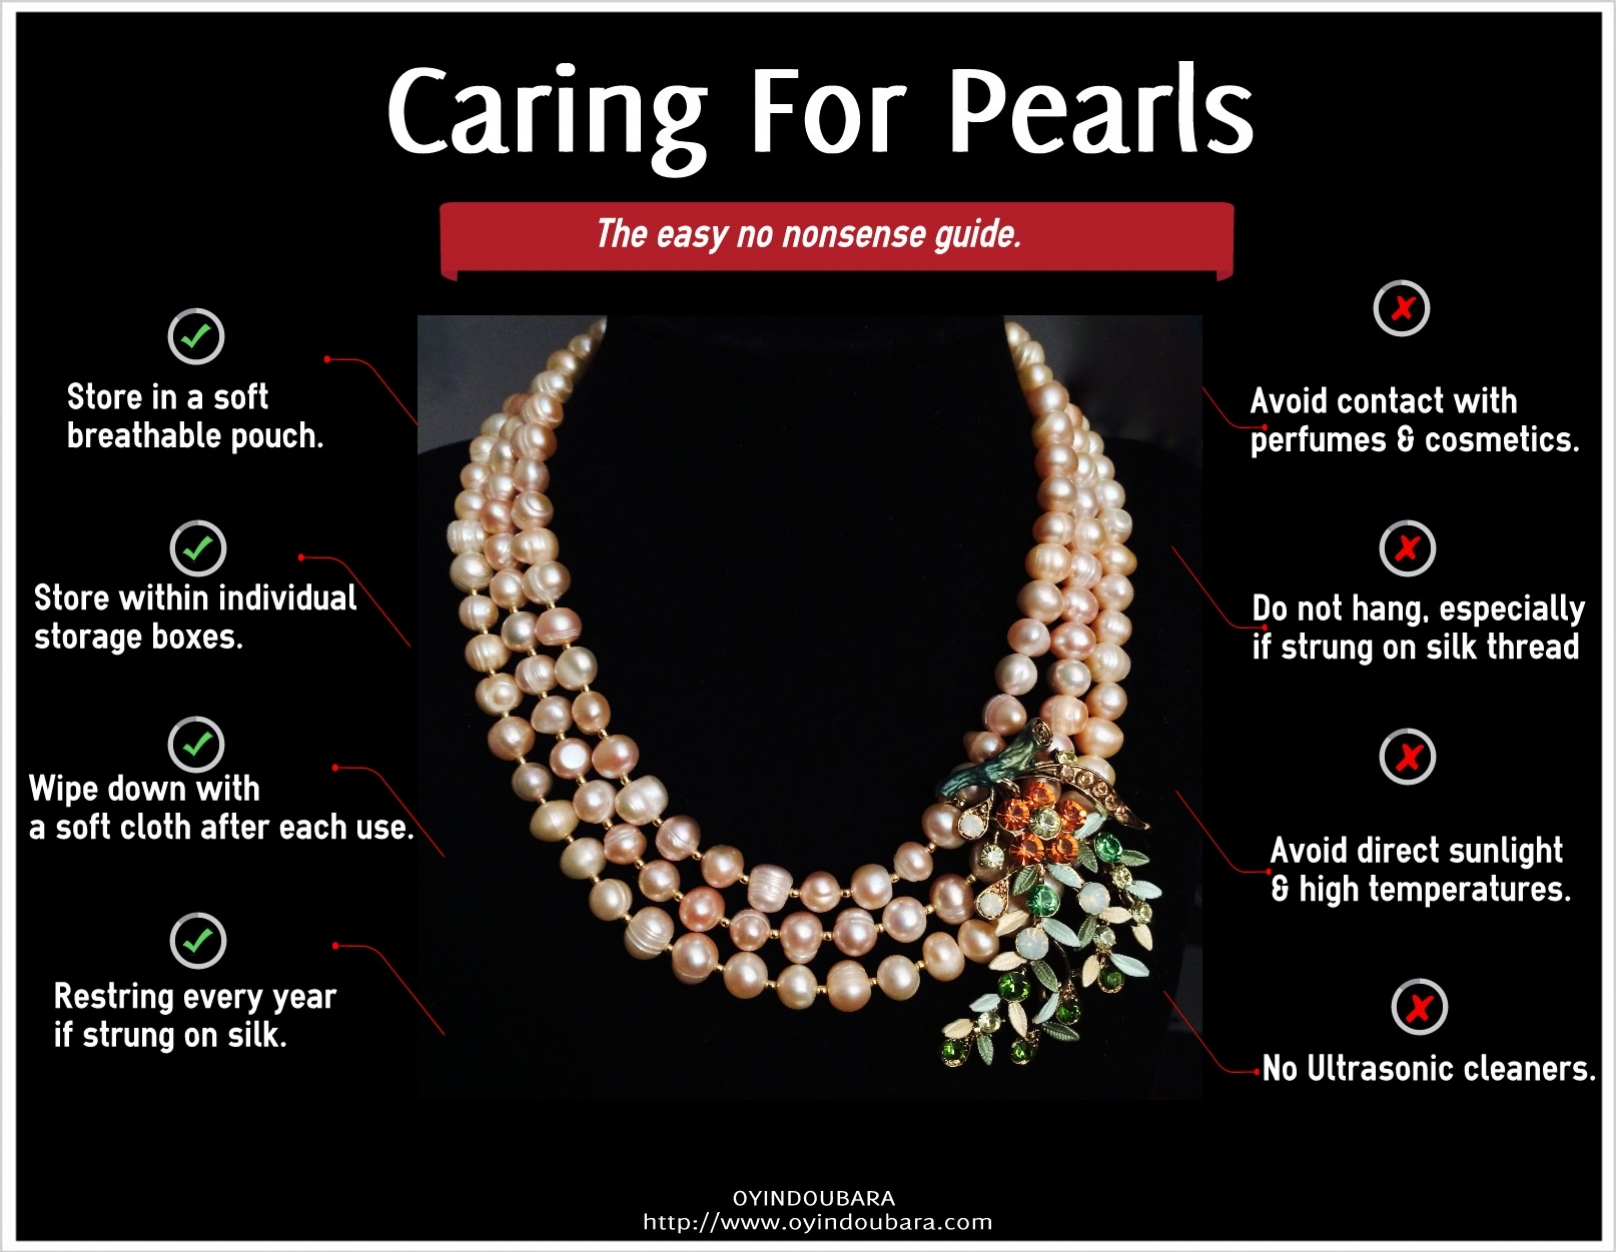 pearlcare2 title=